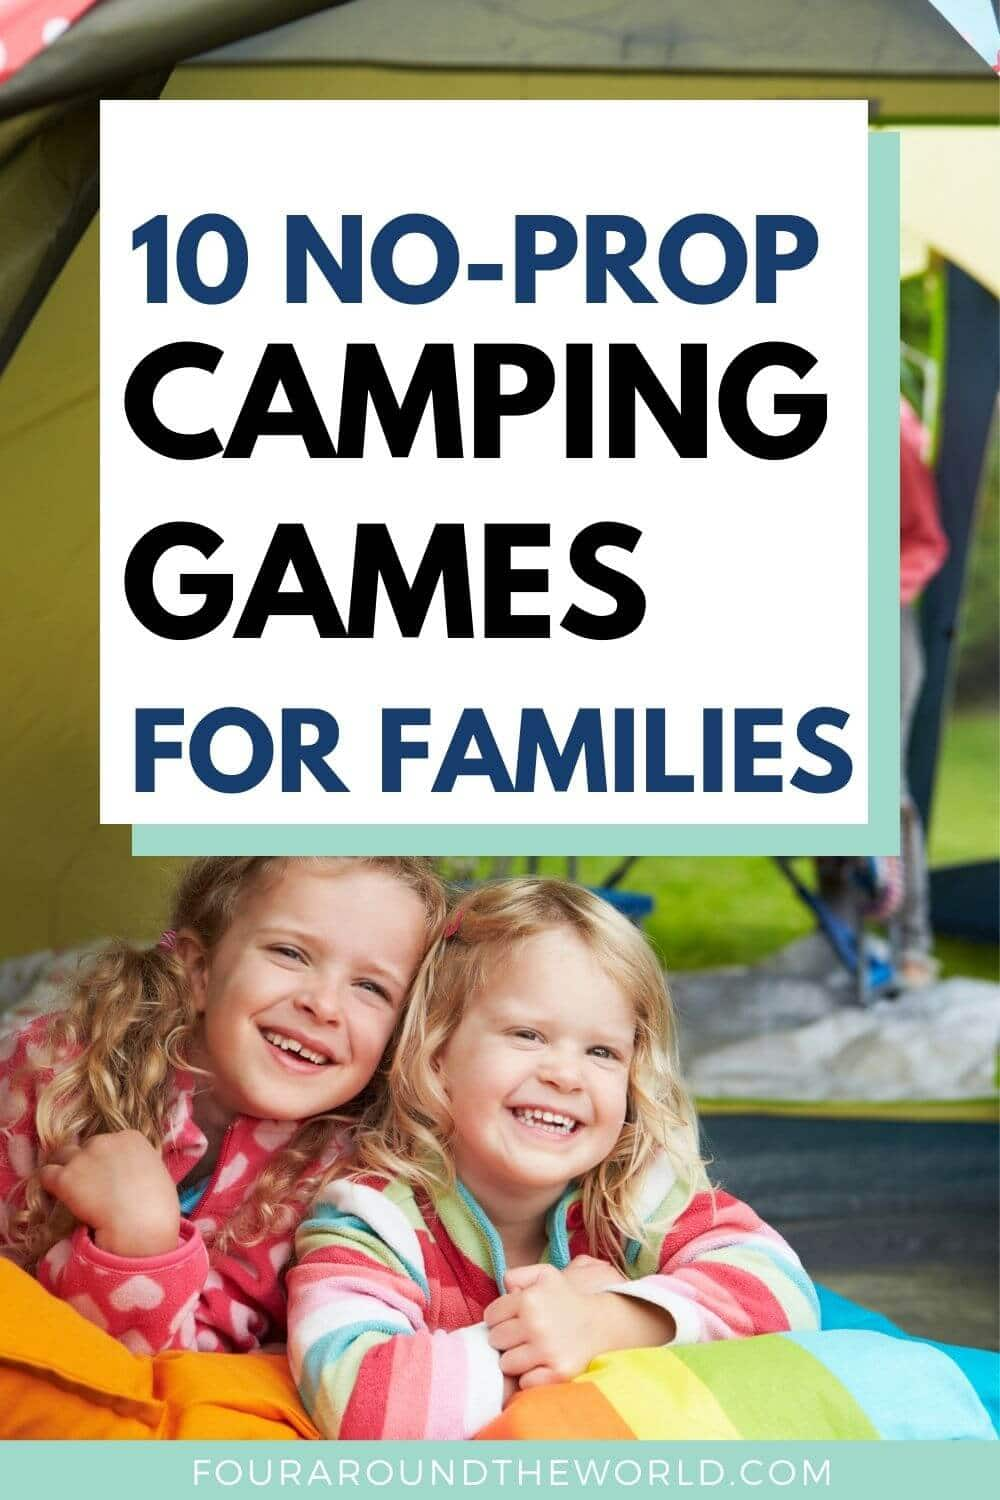 10 fun camping games for families